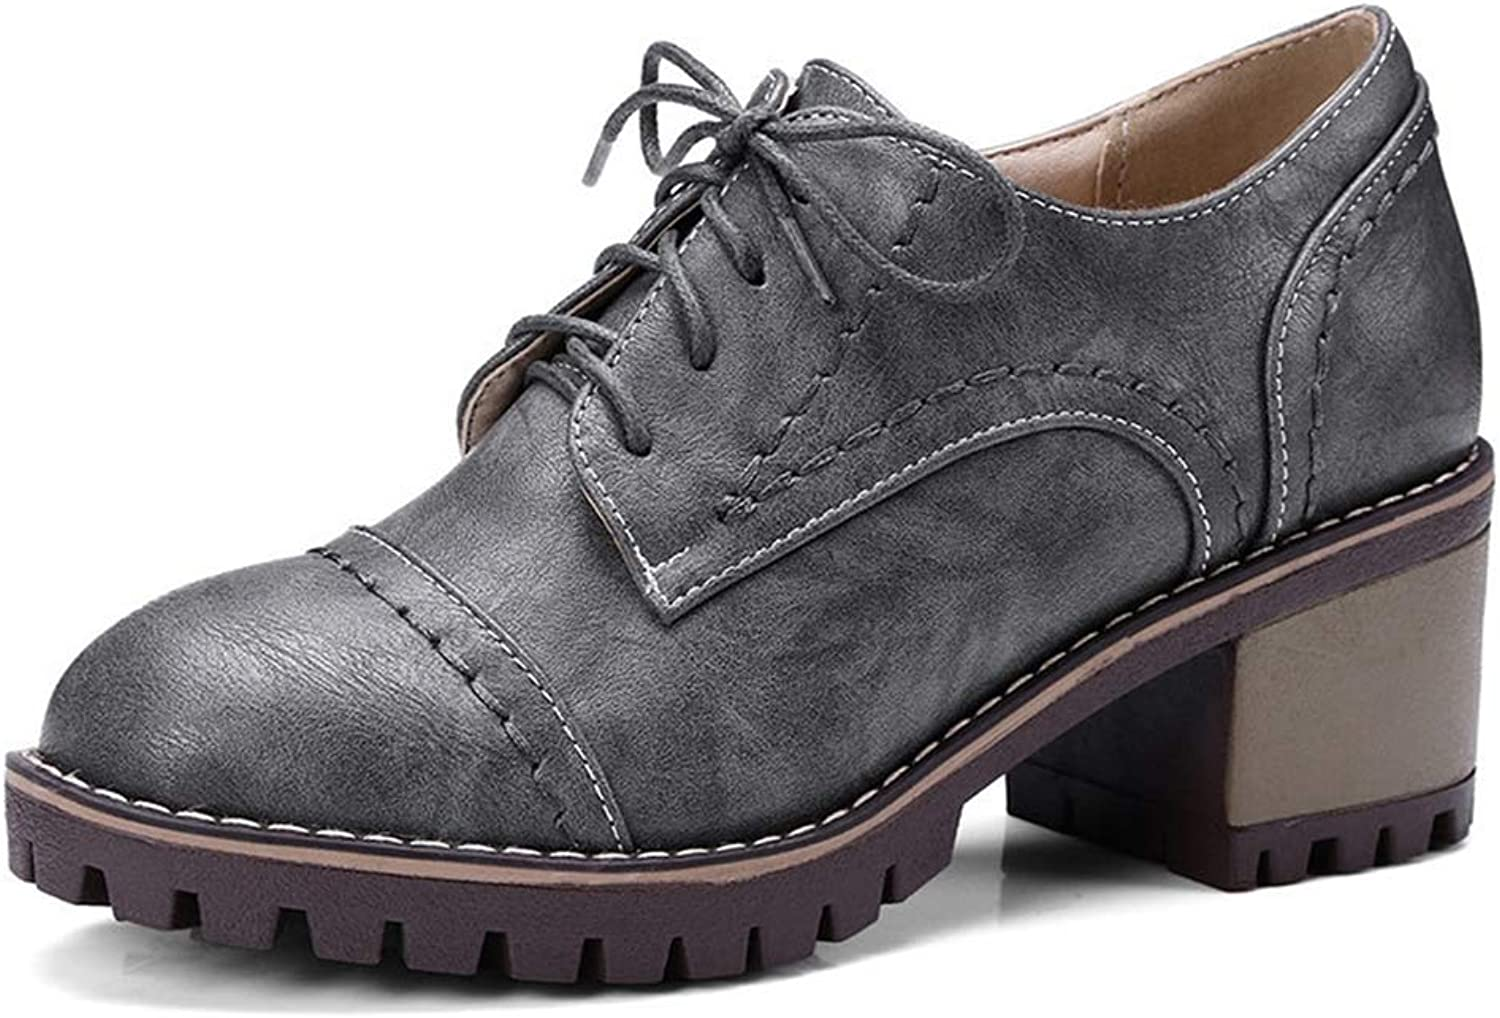 CYBLING Womens Vintage Oxfords PU Leather Brogue Wingtip Lace up Chunky Mid Heel shoes